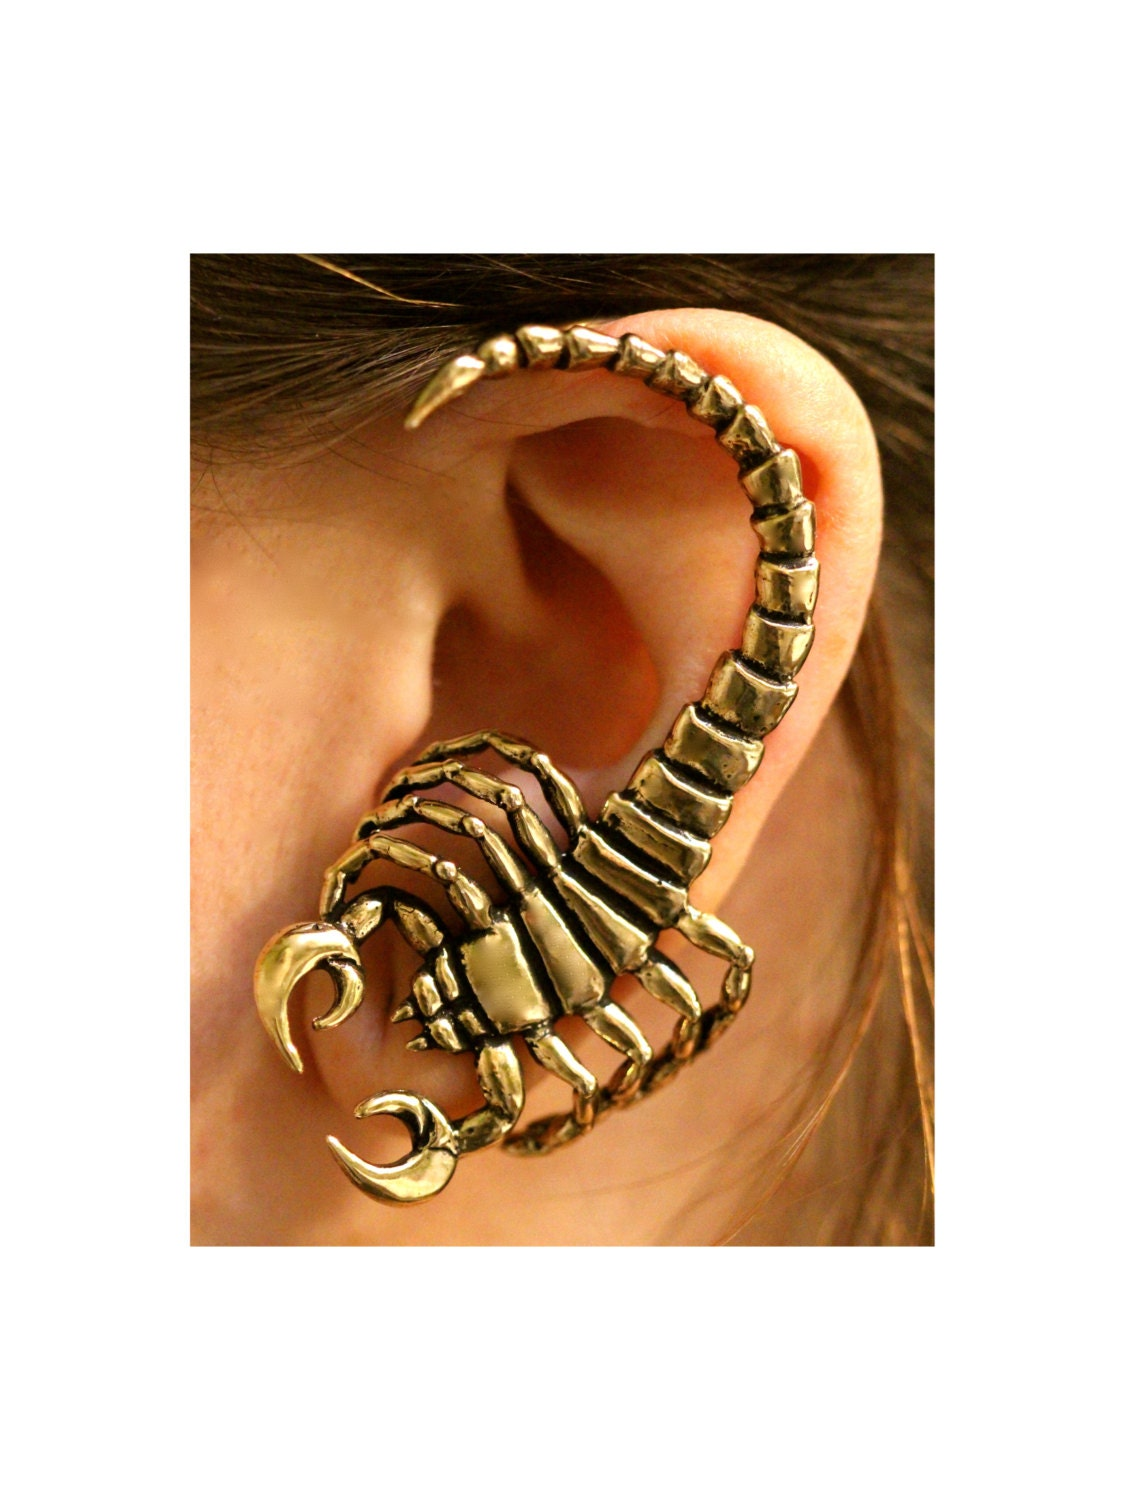 Scorpion Ear Wrap Bronze Scorpion Ear Cuff Scorpion Earring